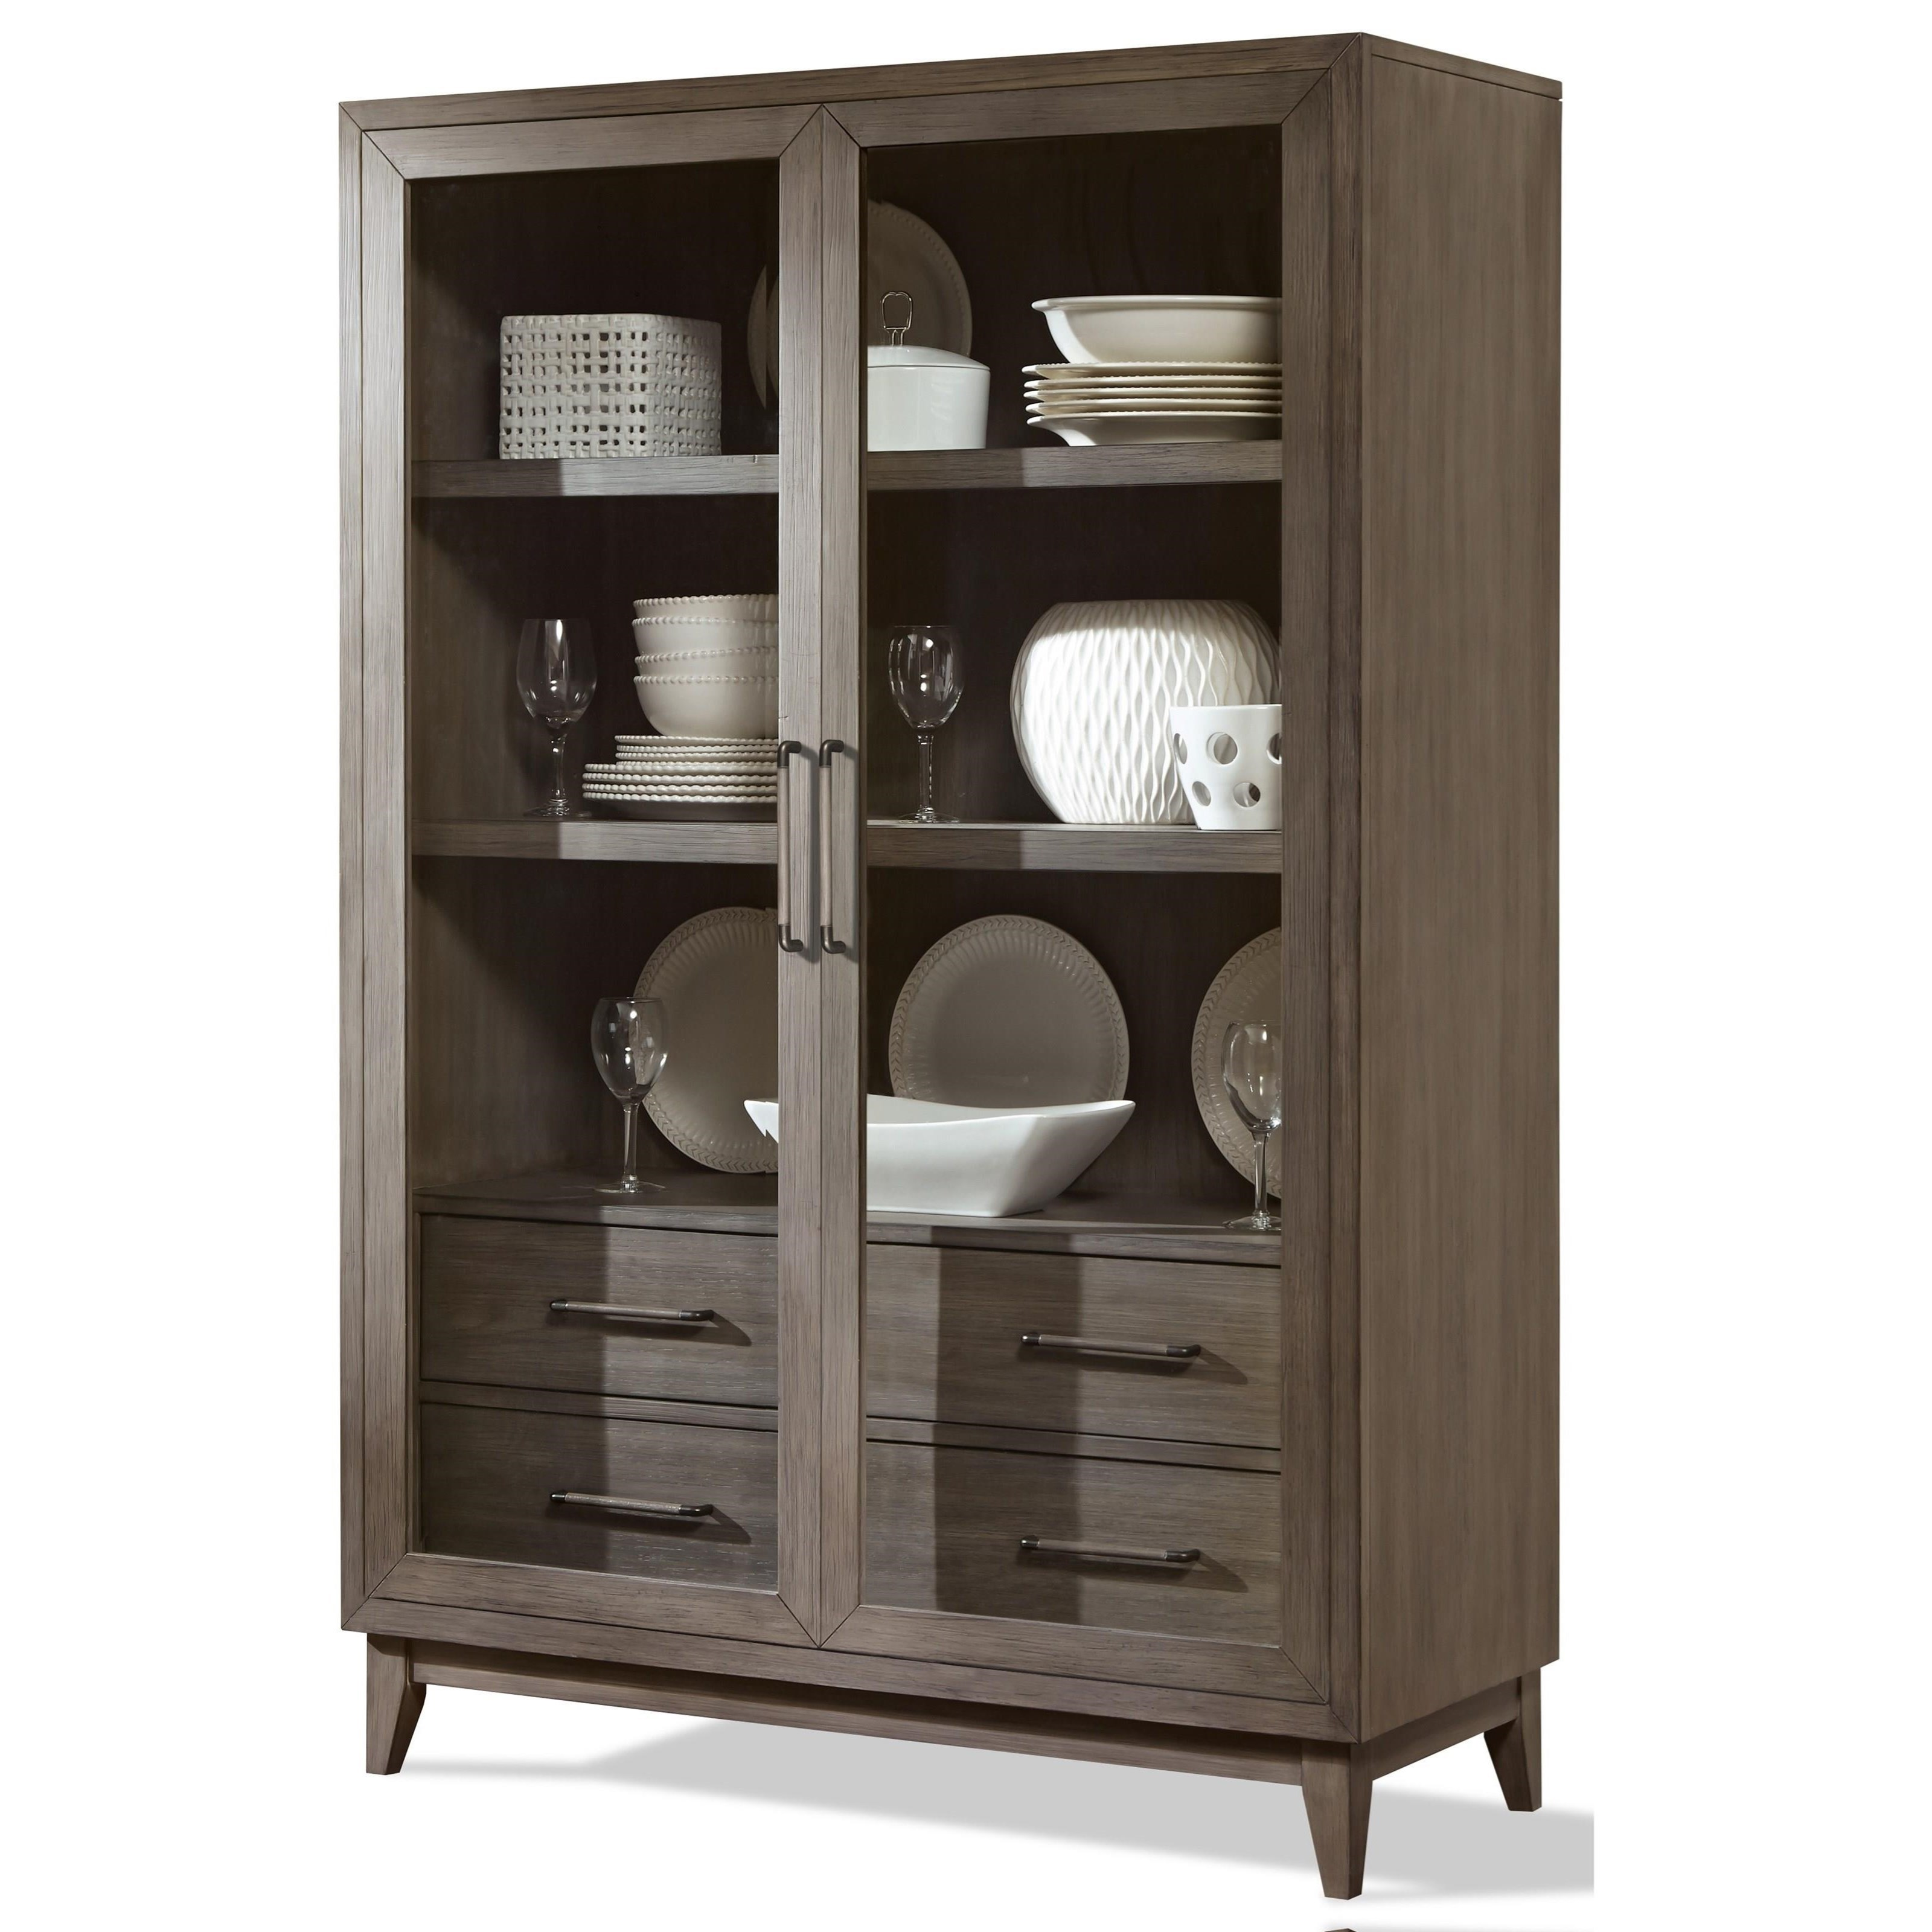 Riverside Furniture Vogue 46155 Display Cabinet With Full